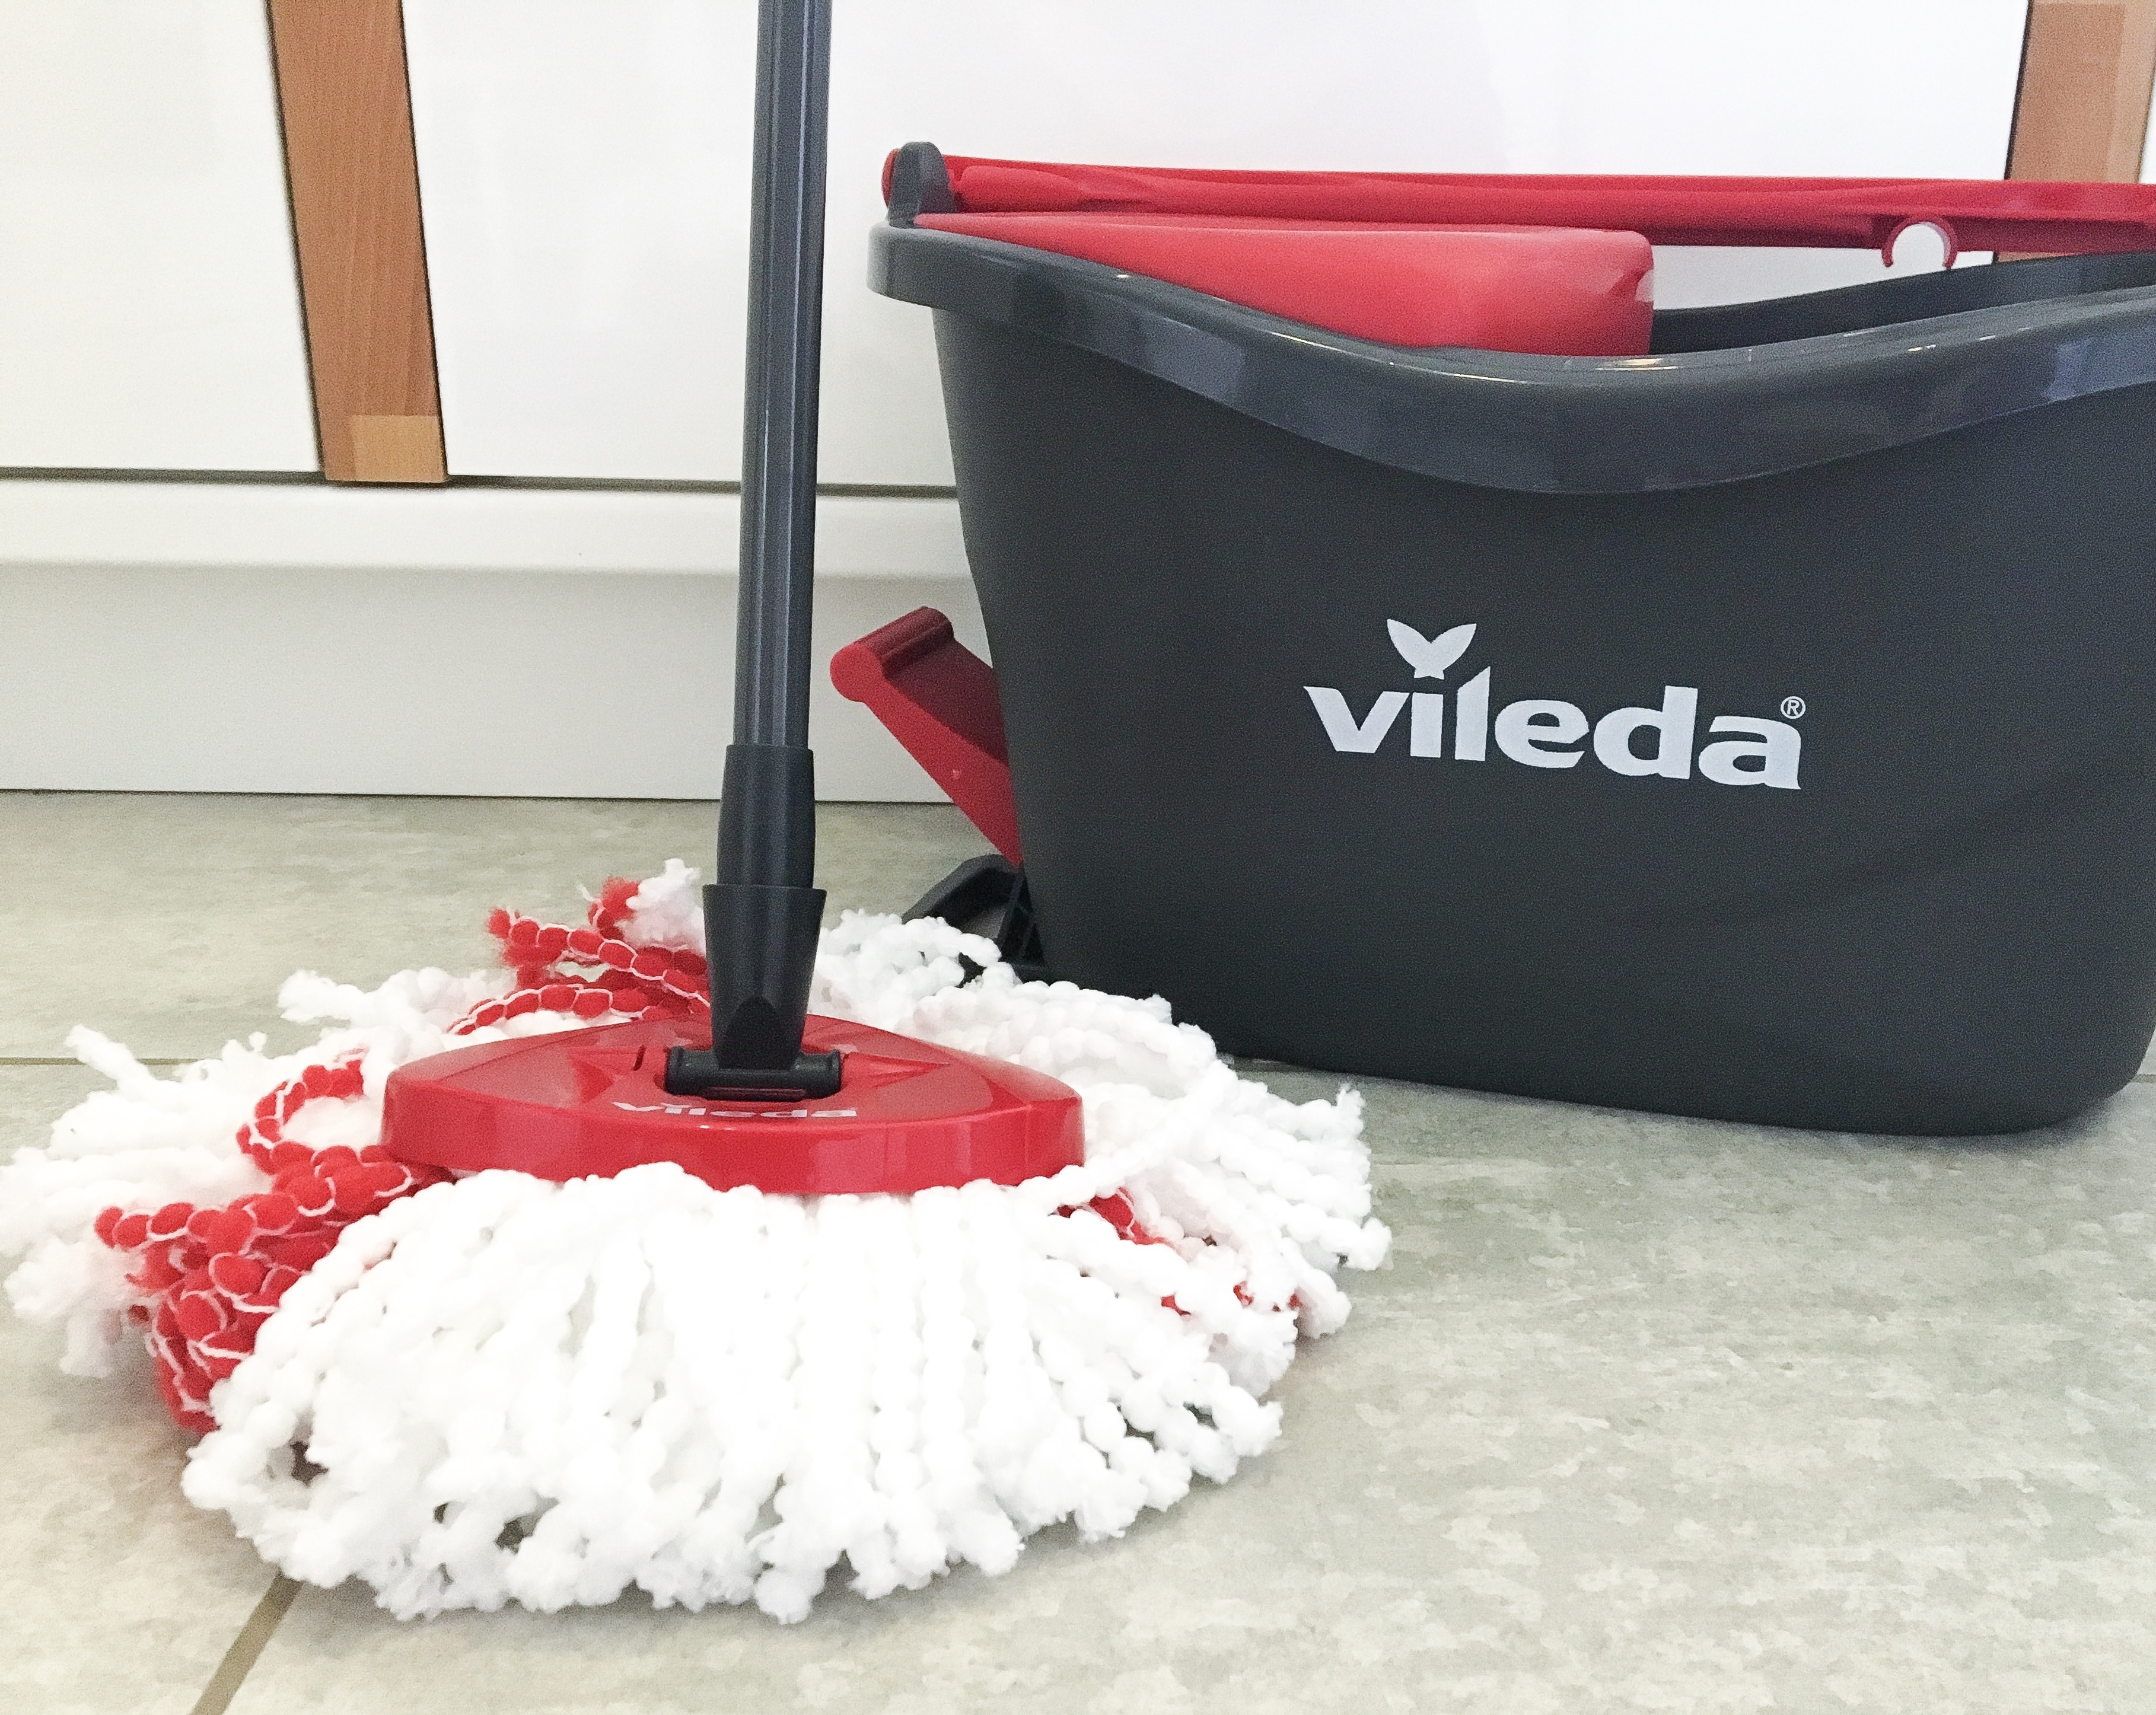 Vileda EasyWring and clean turbo mop